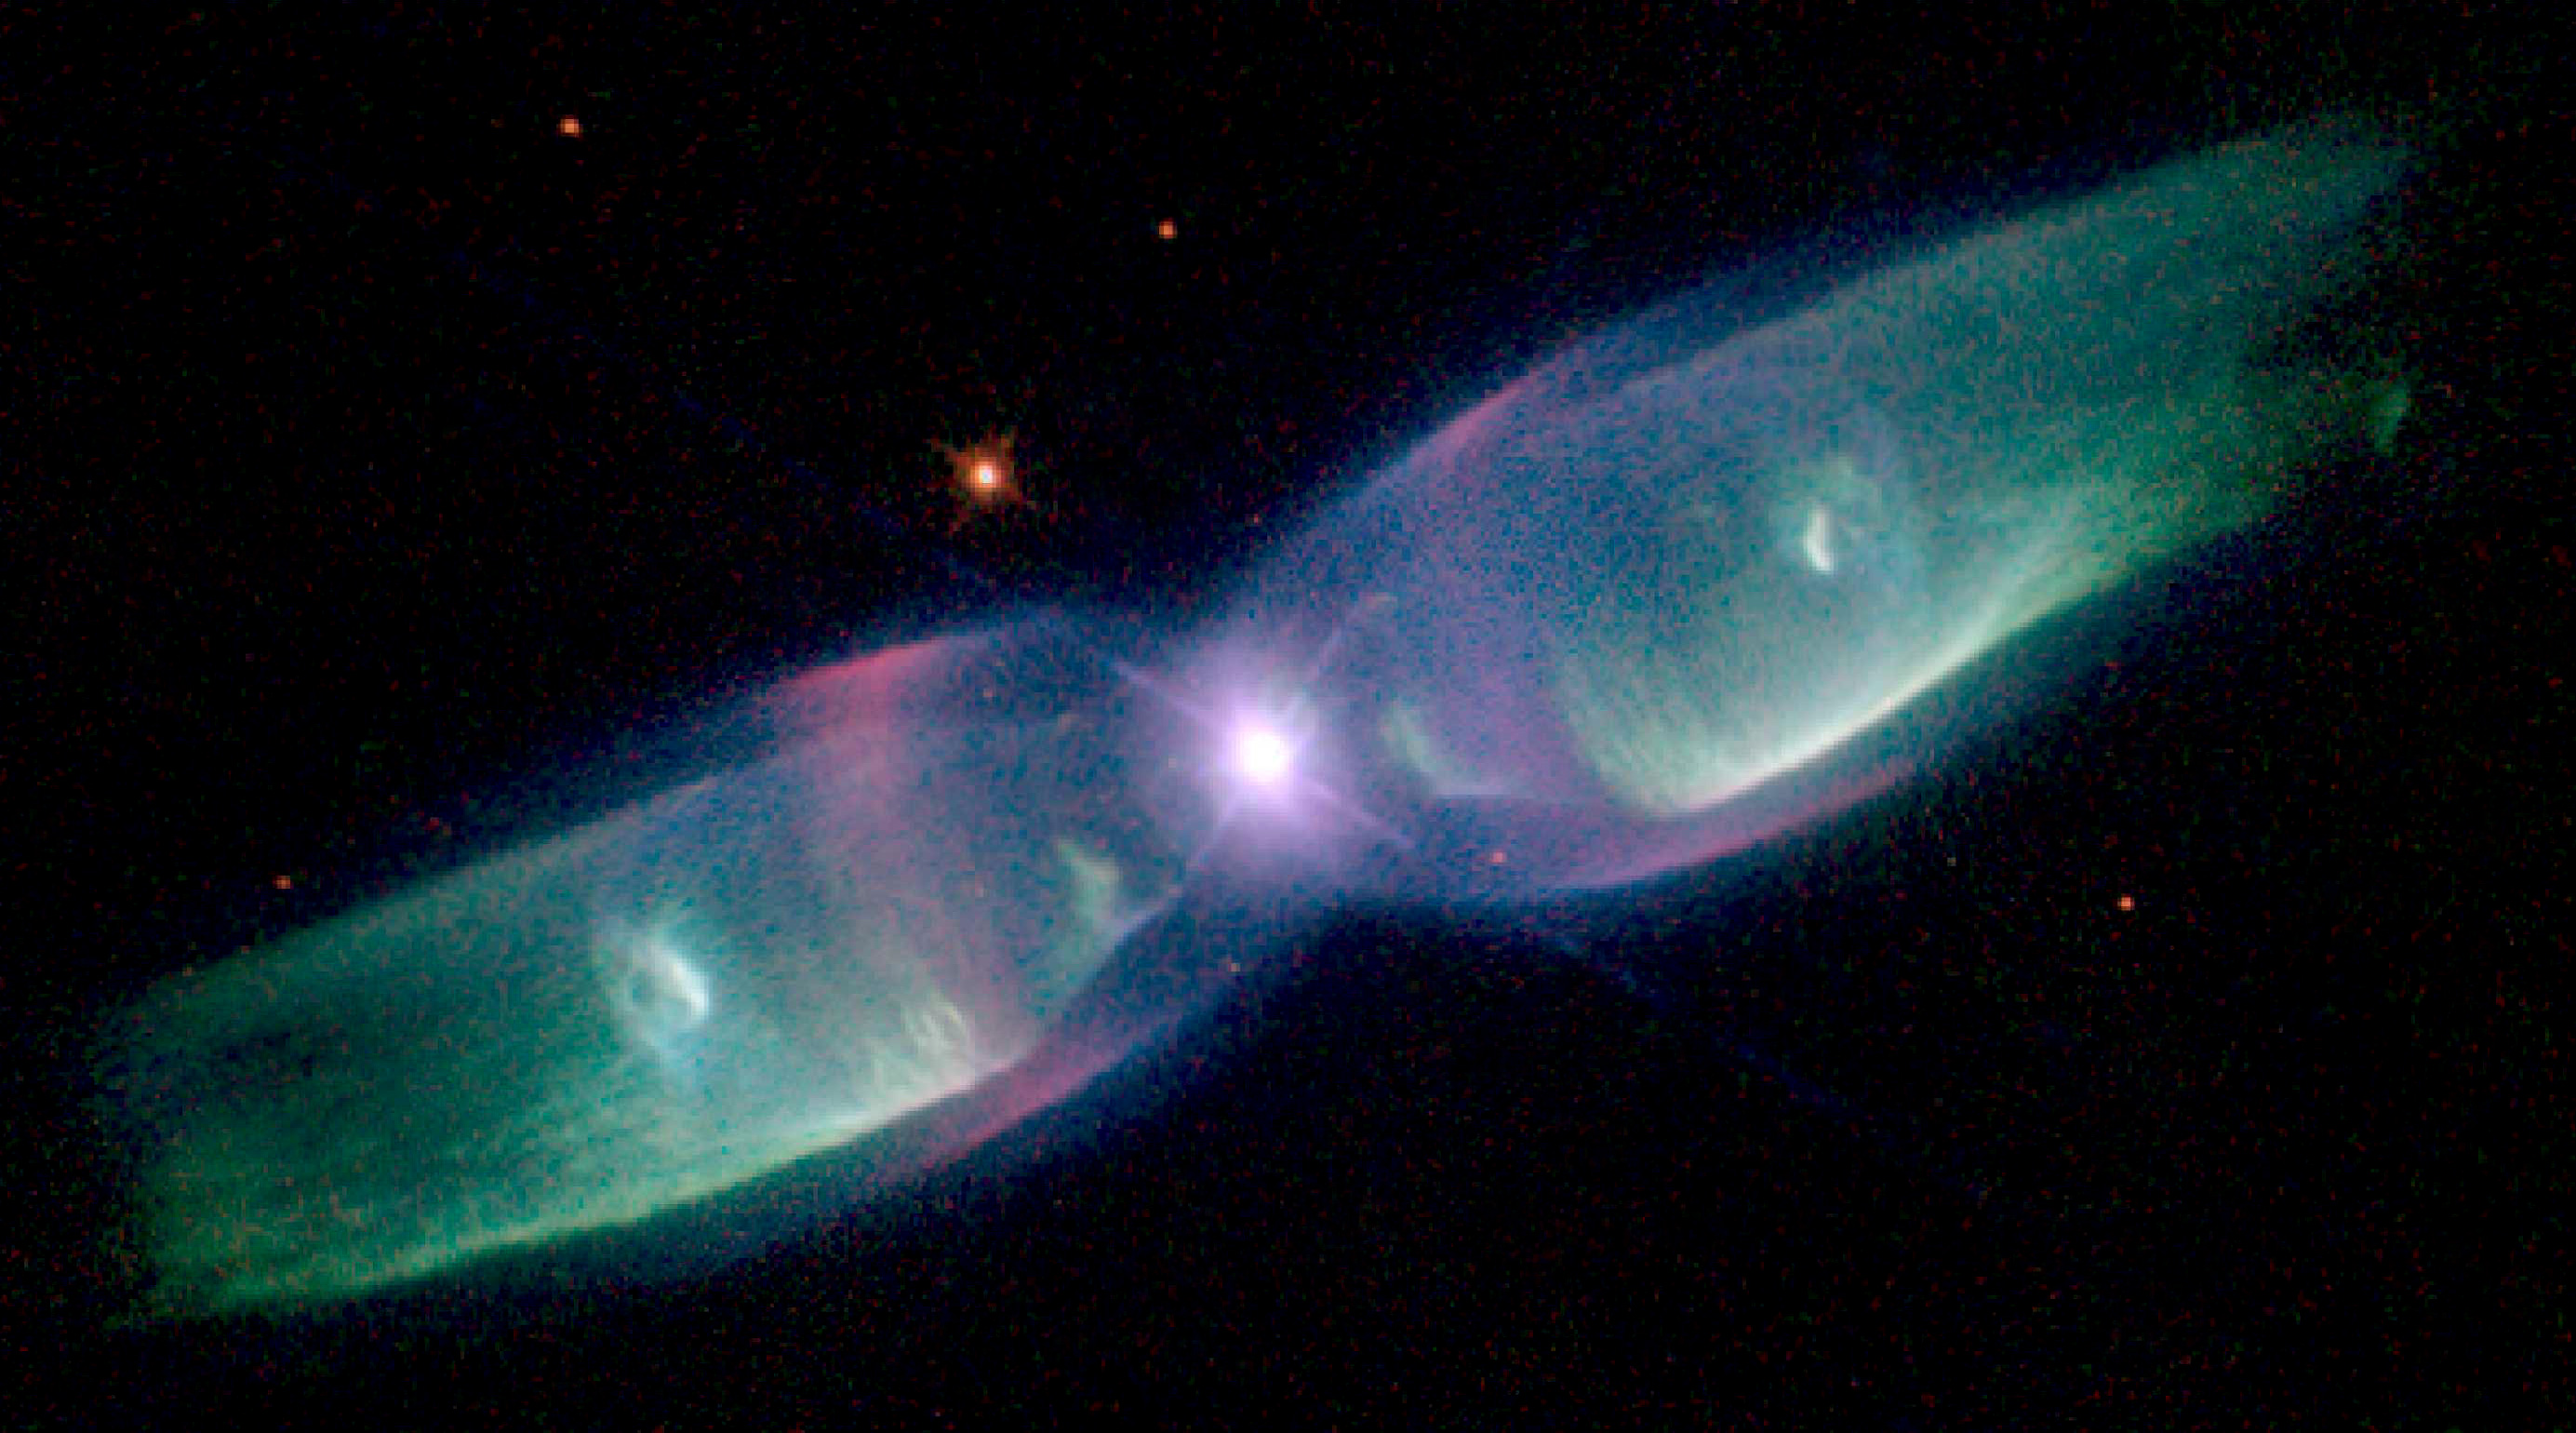 nebulae planetary nebula - photo #17